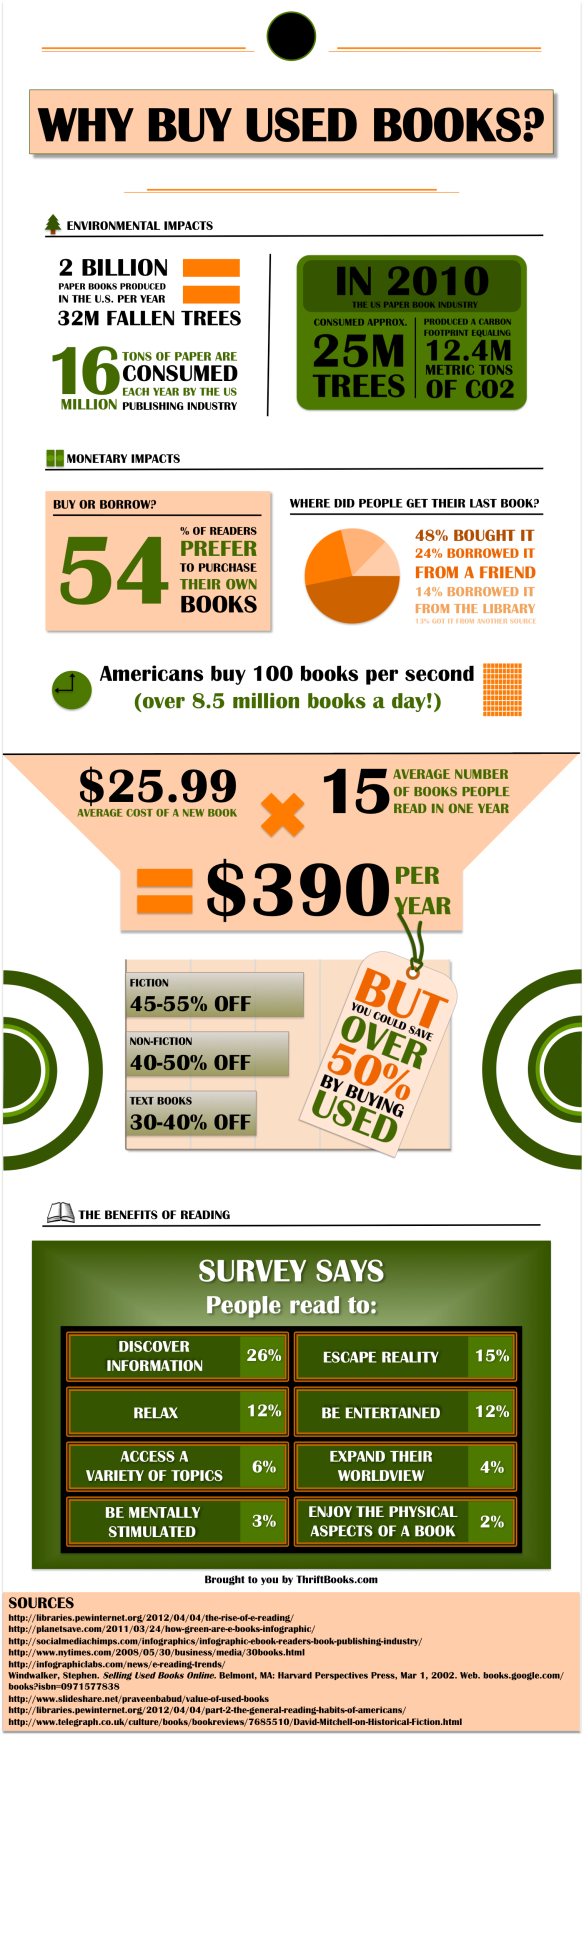 Why Buy Used Books